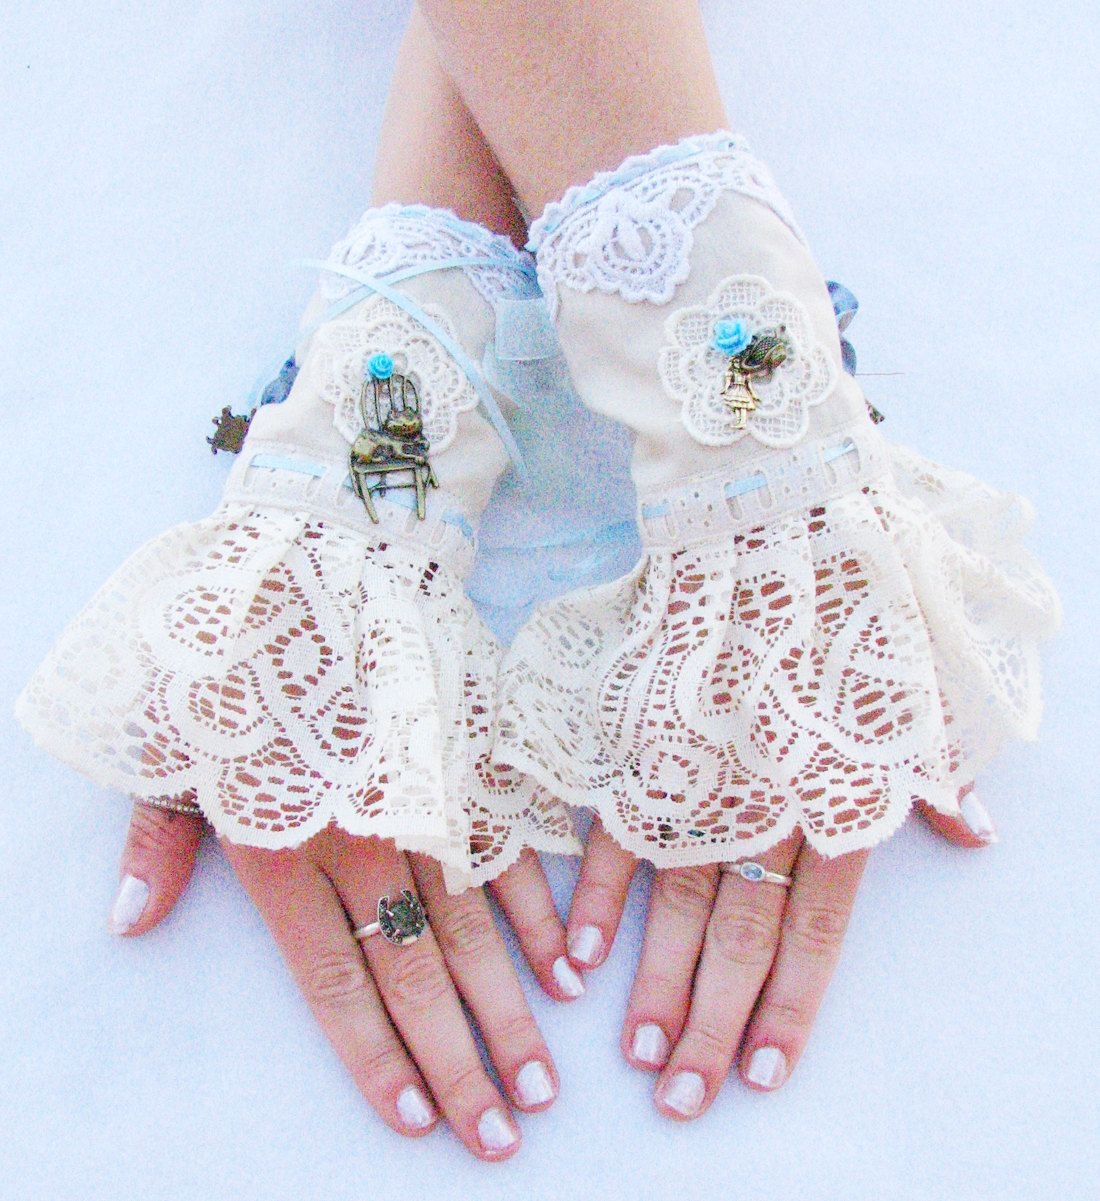 Wedding Lace Bridal Gloves Cuffs Alice In Wonderland Wedding ...